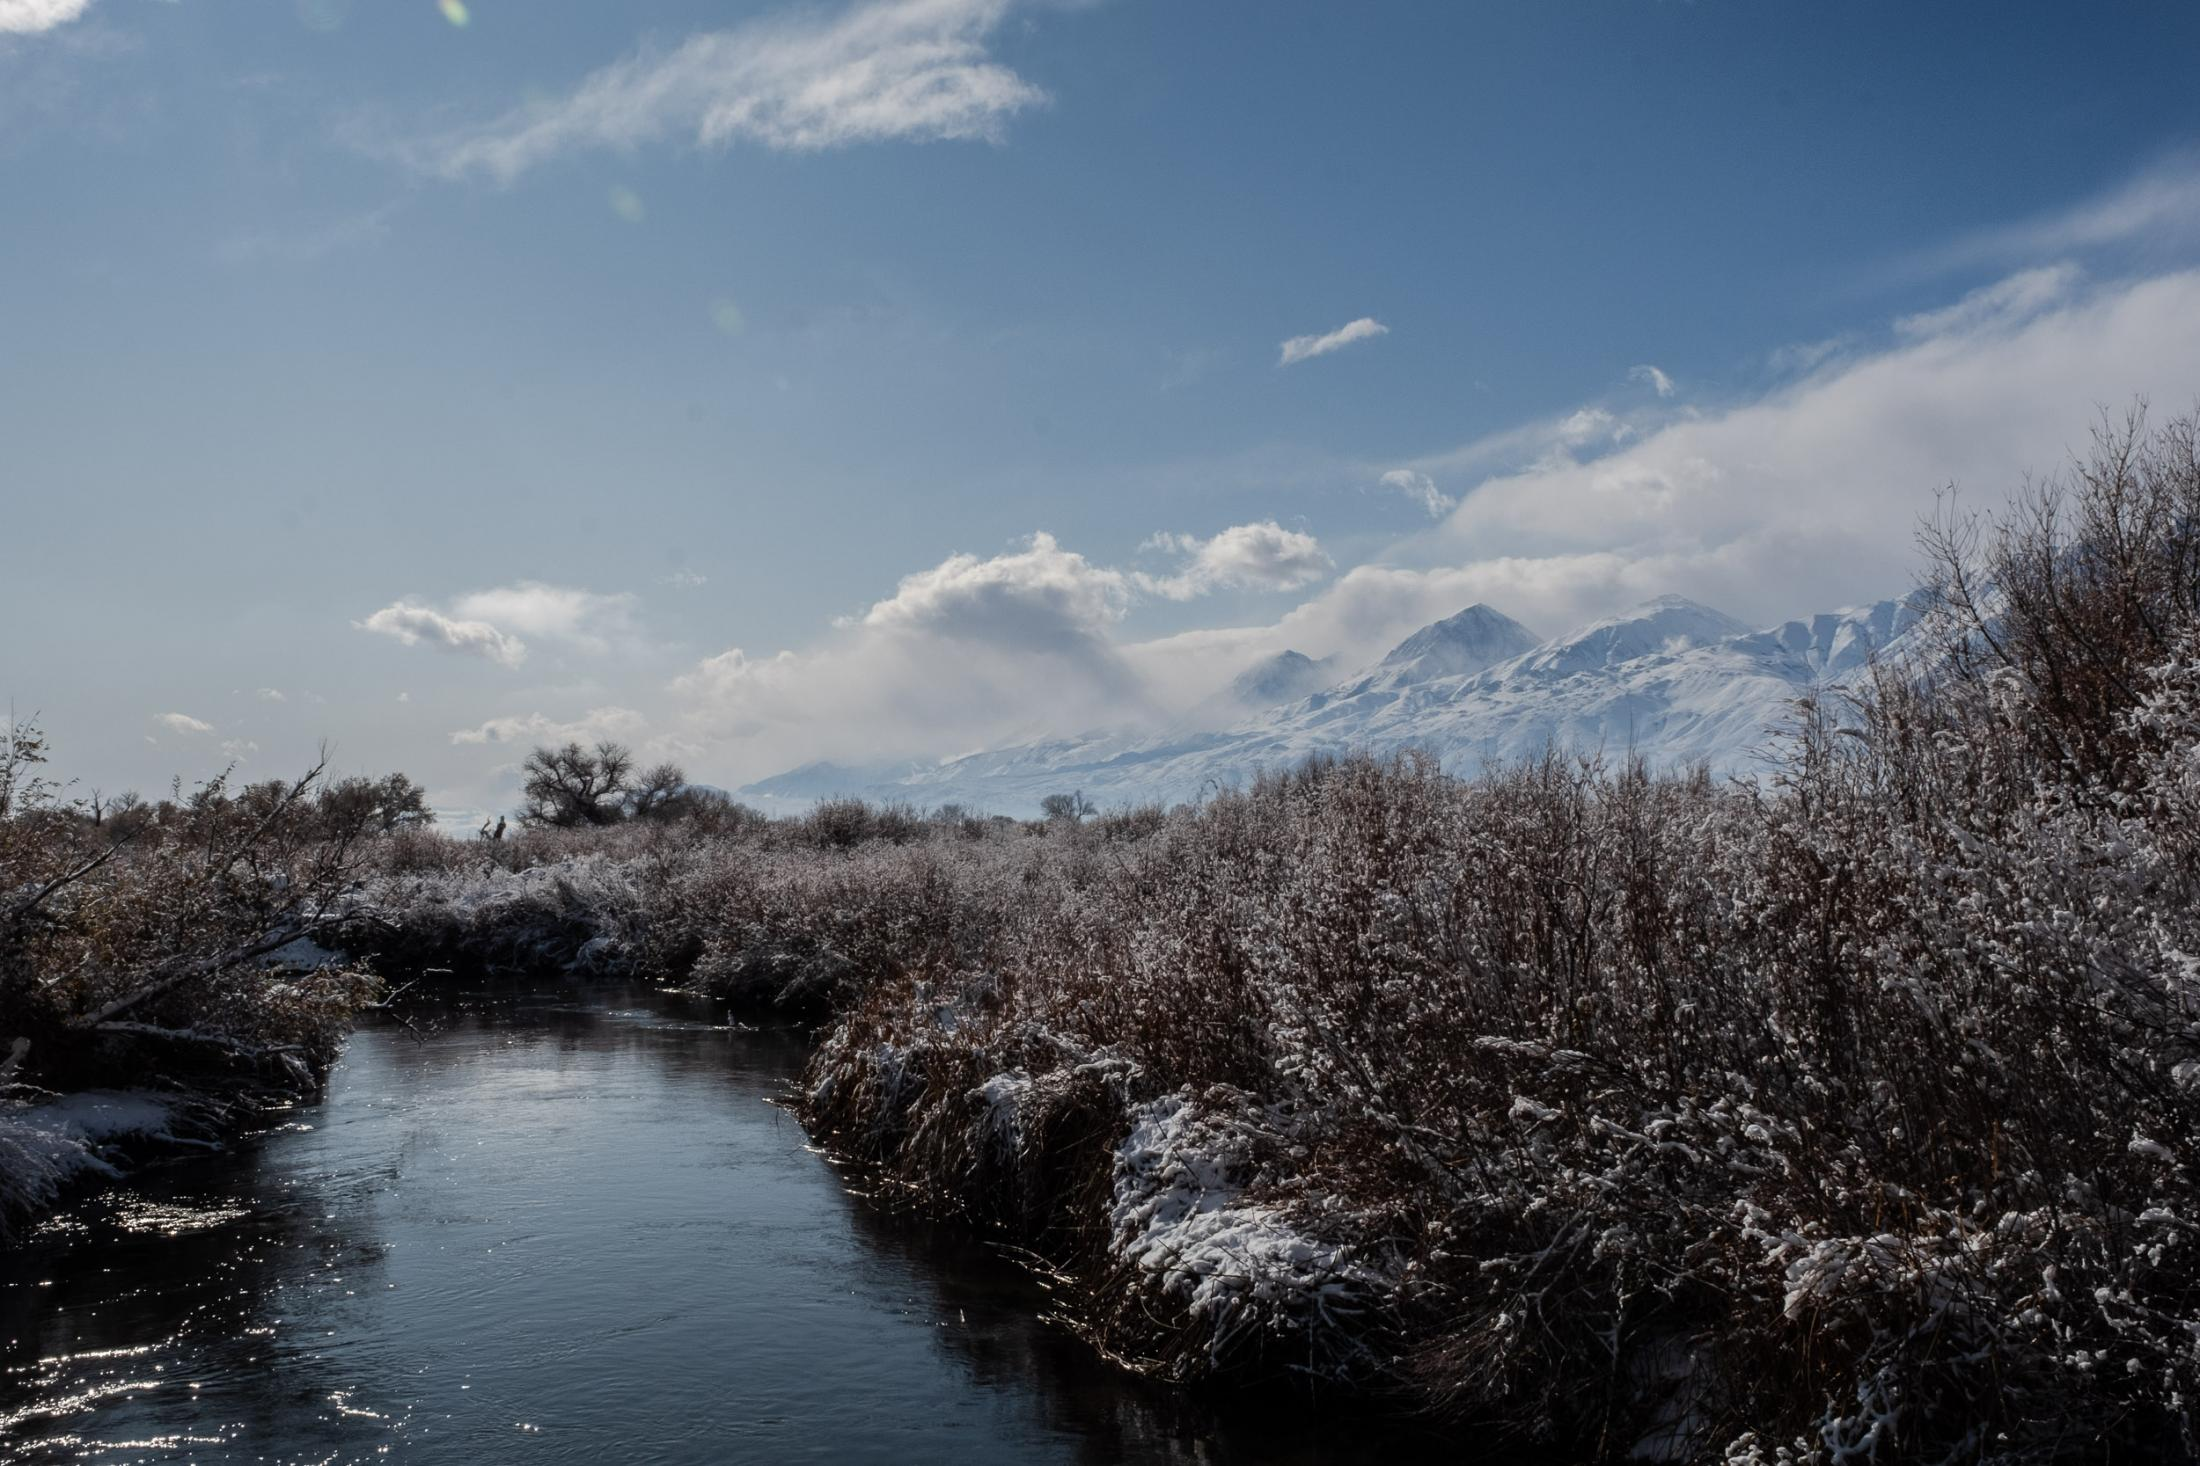 4, Owens river with the Eastern Sierras in the background Nov 2019